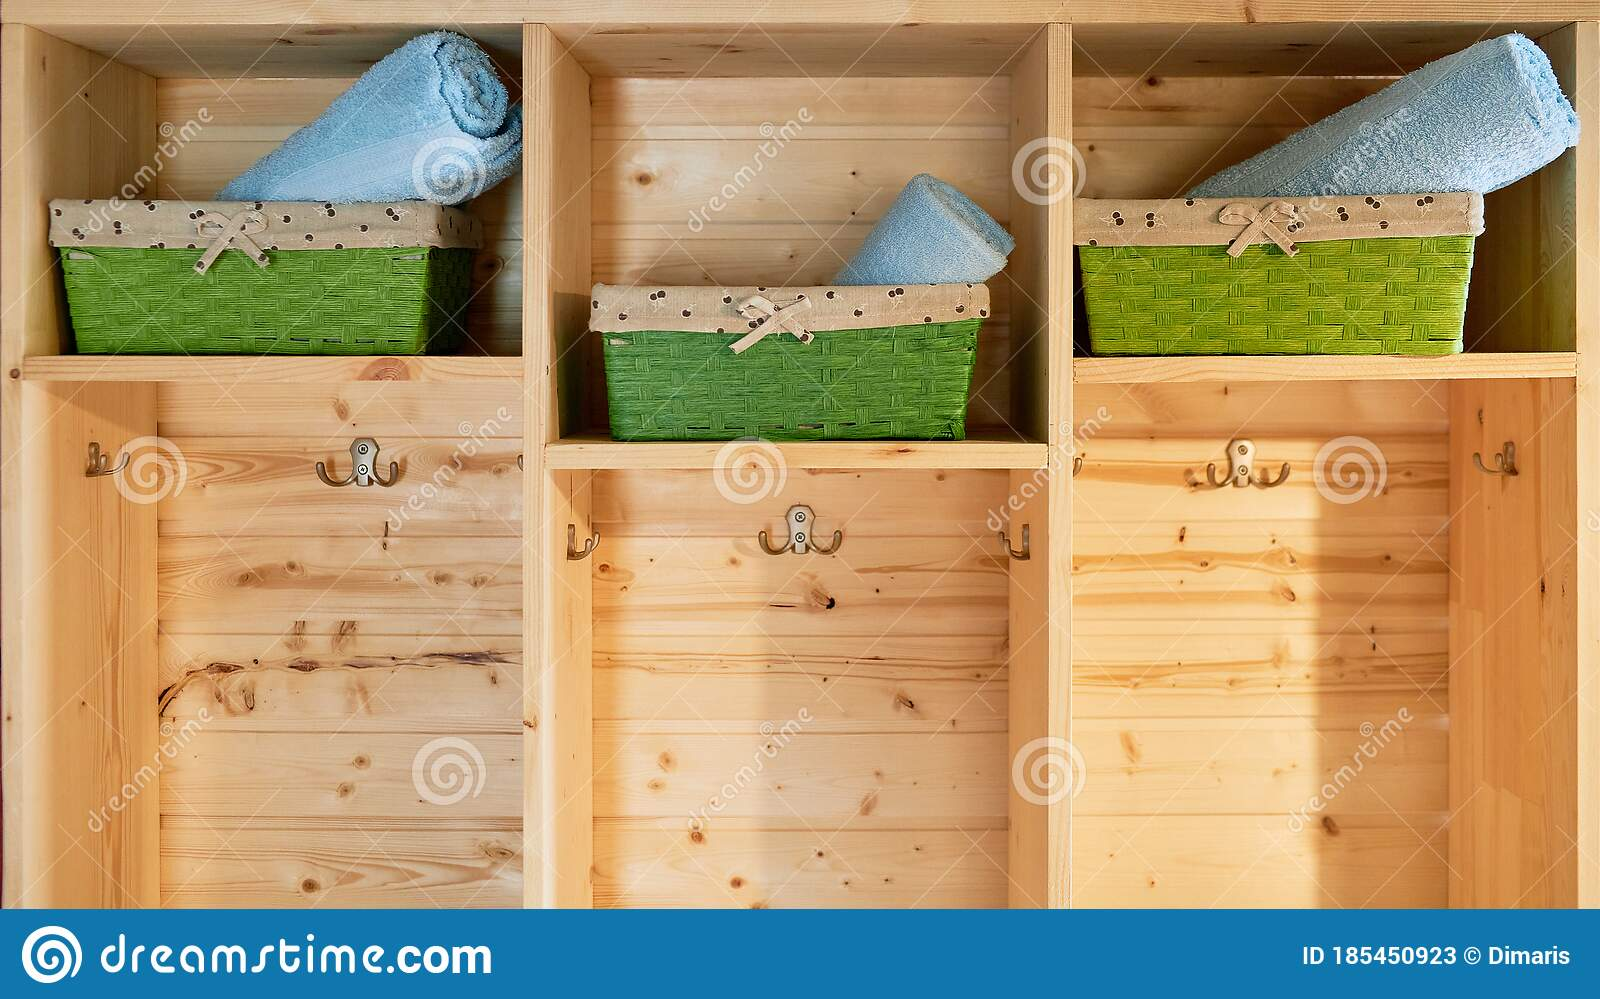 Wooden Shelving Unit And Baskets With Clean Towels Stock Image Image Of Folded Bath 185450923